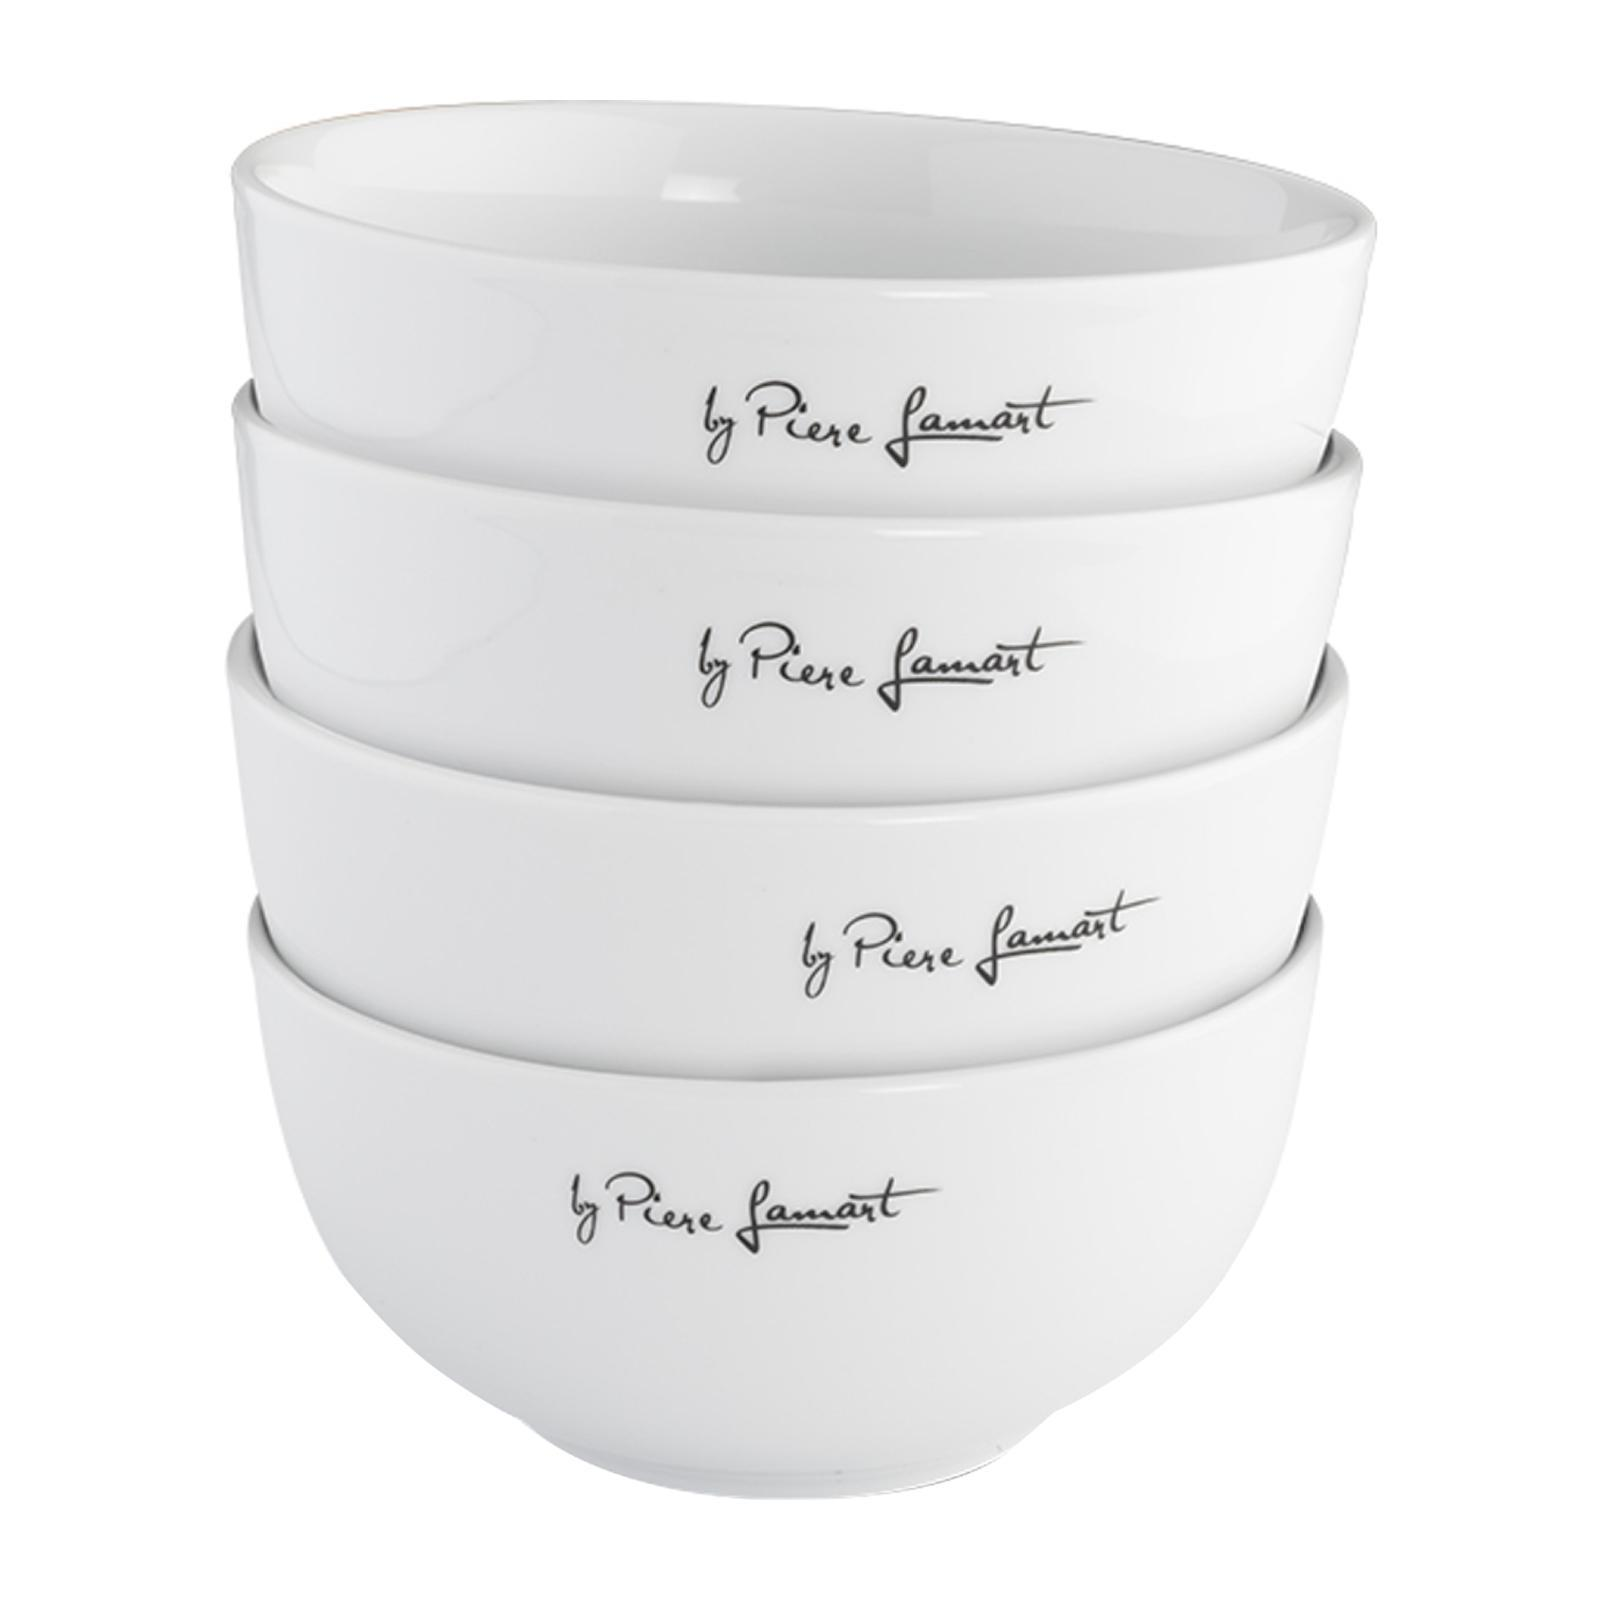 Lamart Bowl Set - 4 PCS